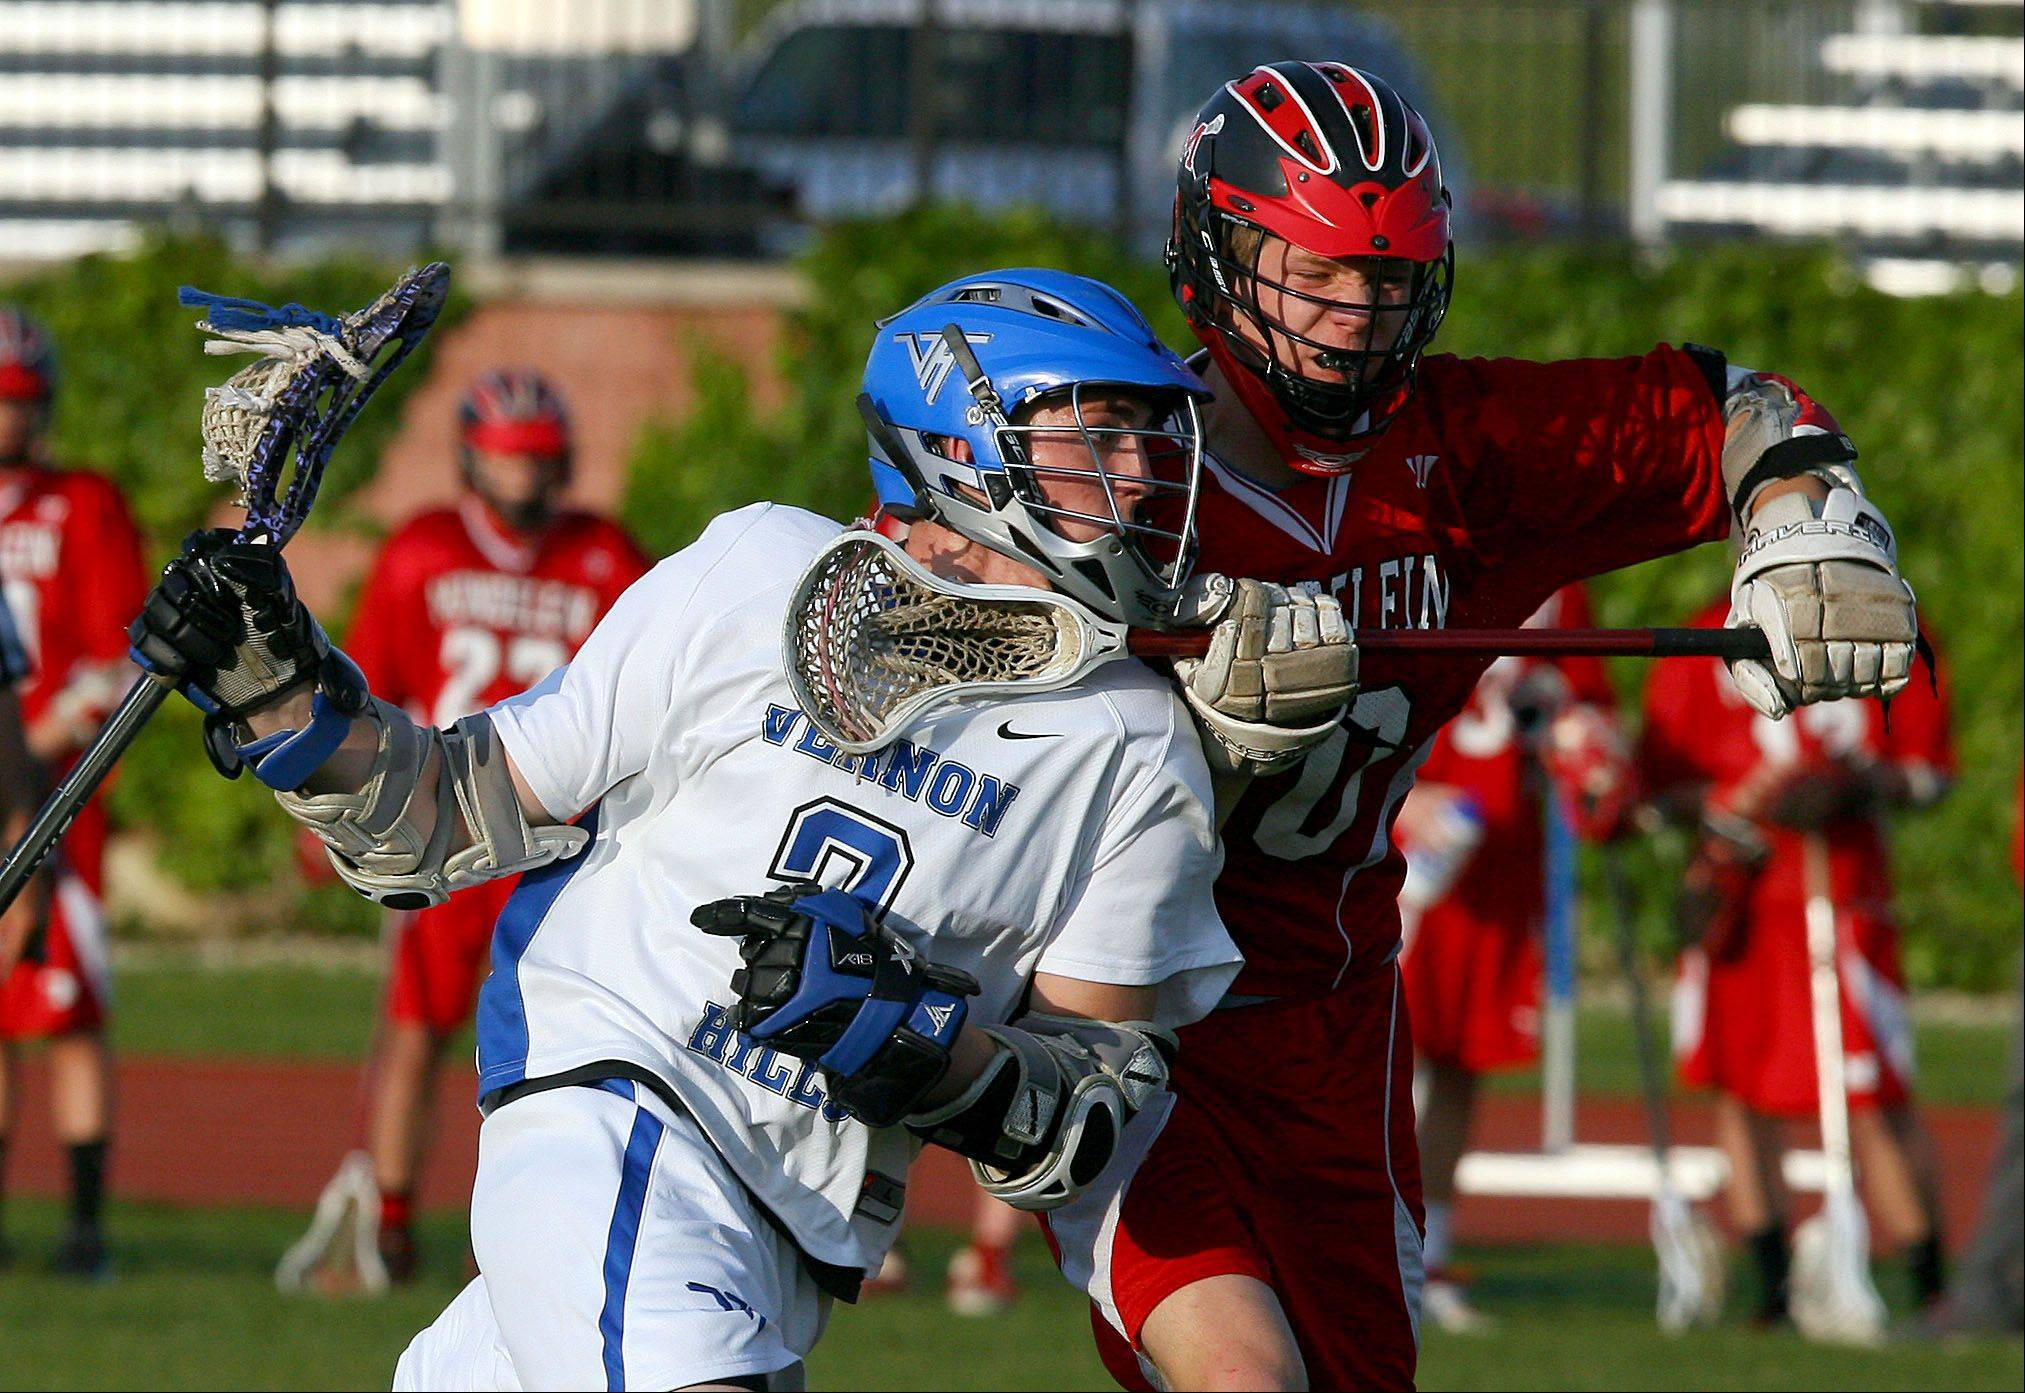 Vernon Hills' Tyler Peterson, left, drives on Mundelein's Luke Samson.